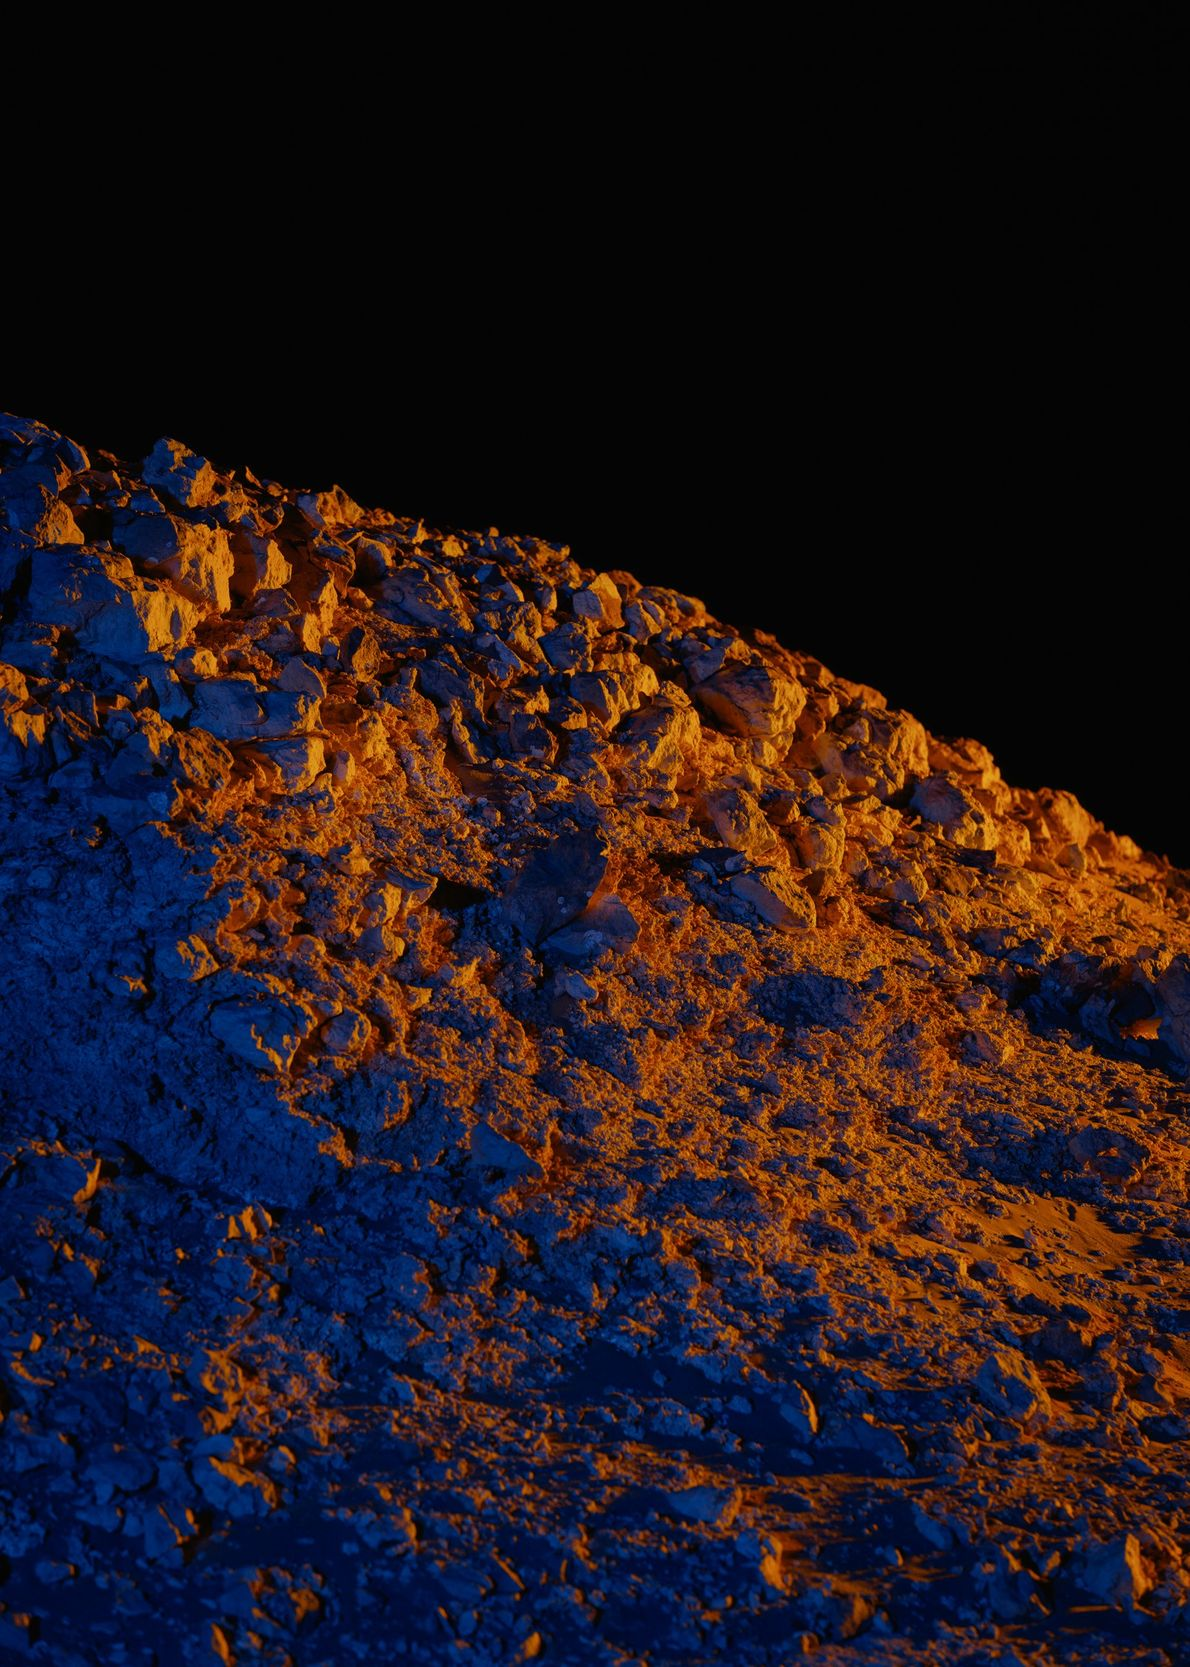 Artificial lighting throws a rocky outcrop north of Kepler Station into stark relief.